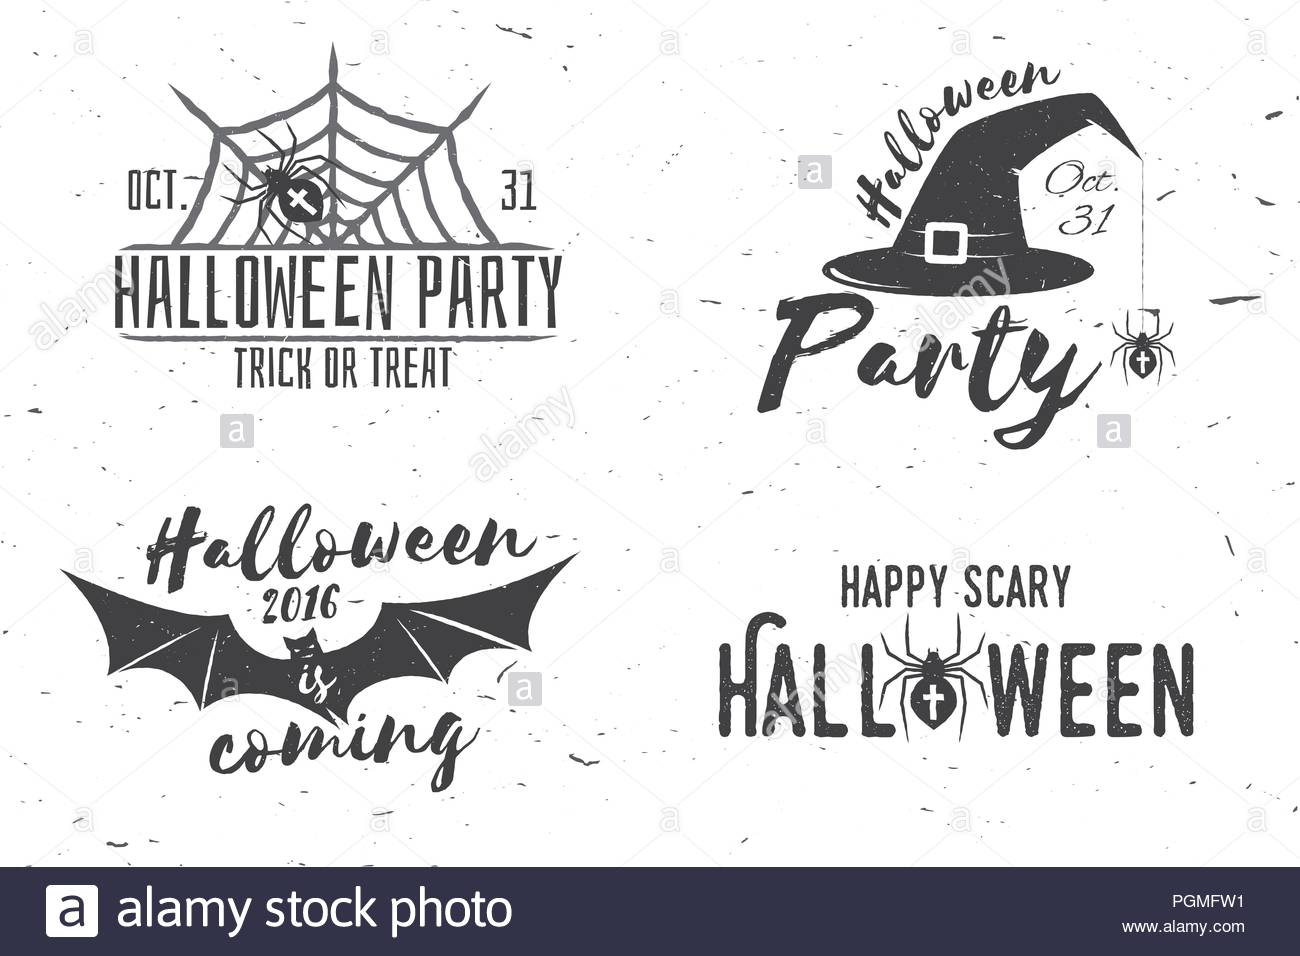 happy scary halloween party concept. vector halloween retro badge